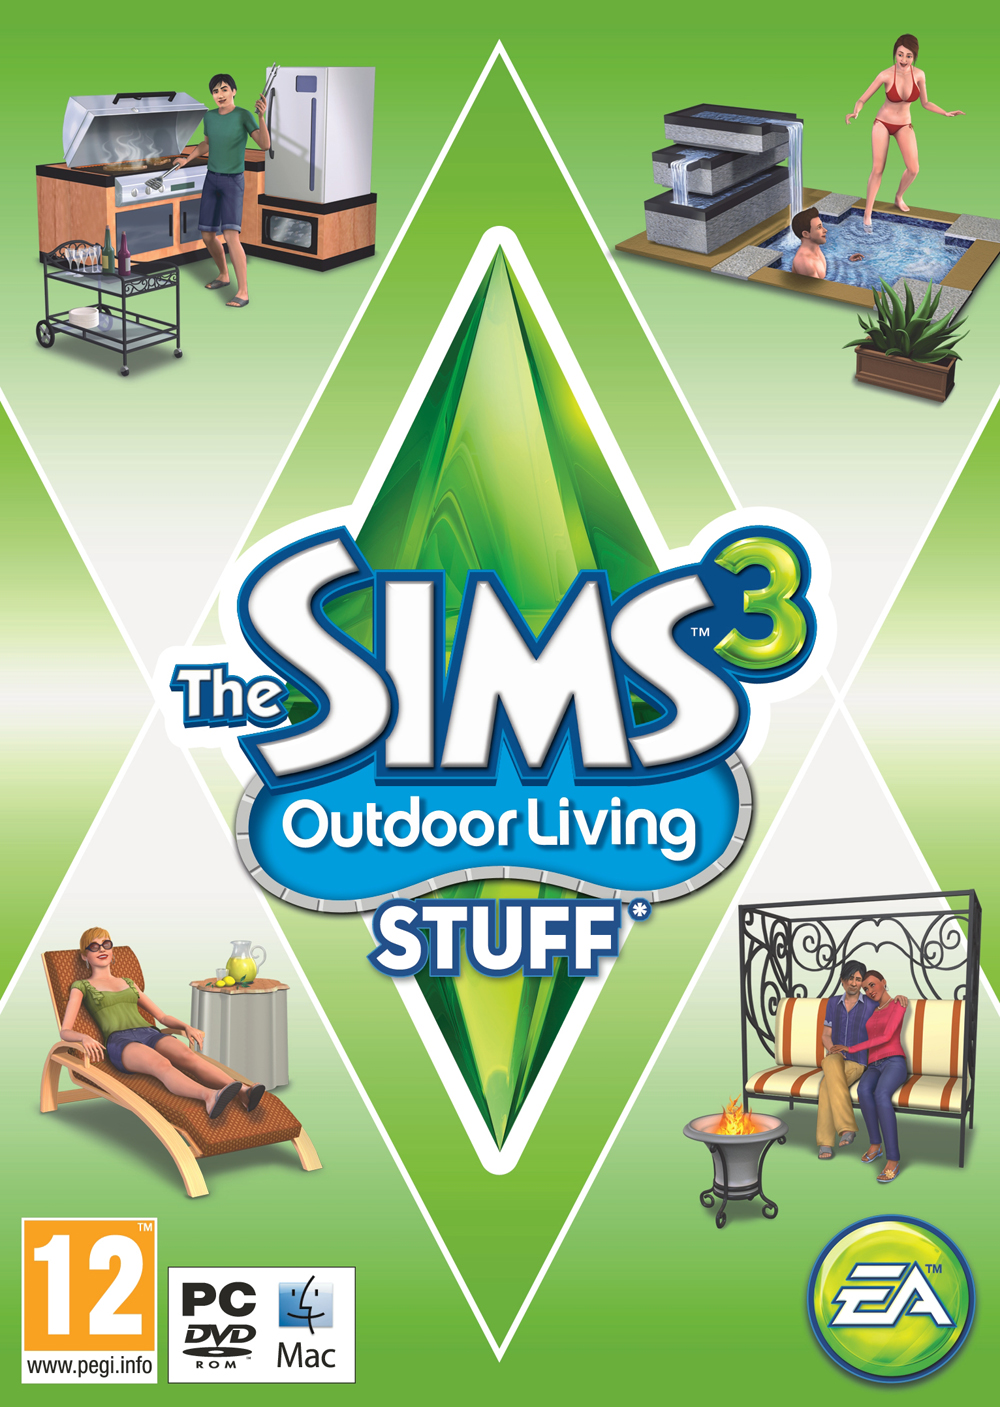 The Sims 3 Design: The Sims 3 Outdoor Living Stuff